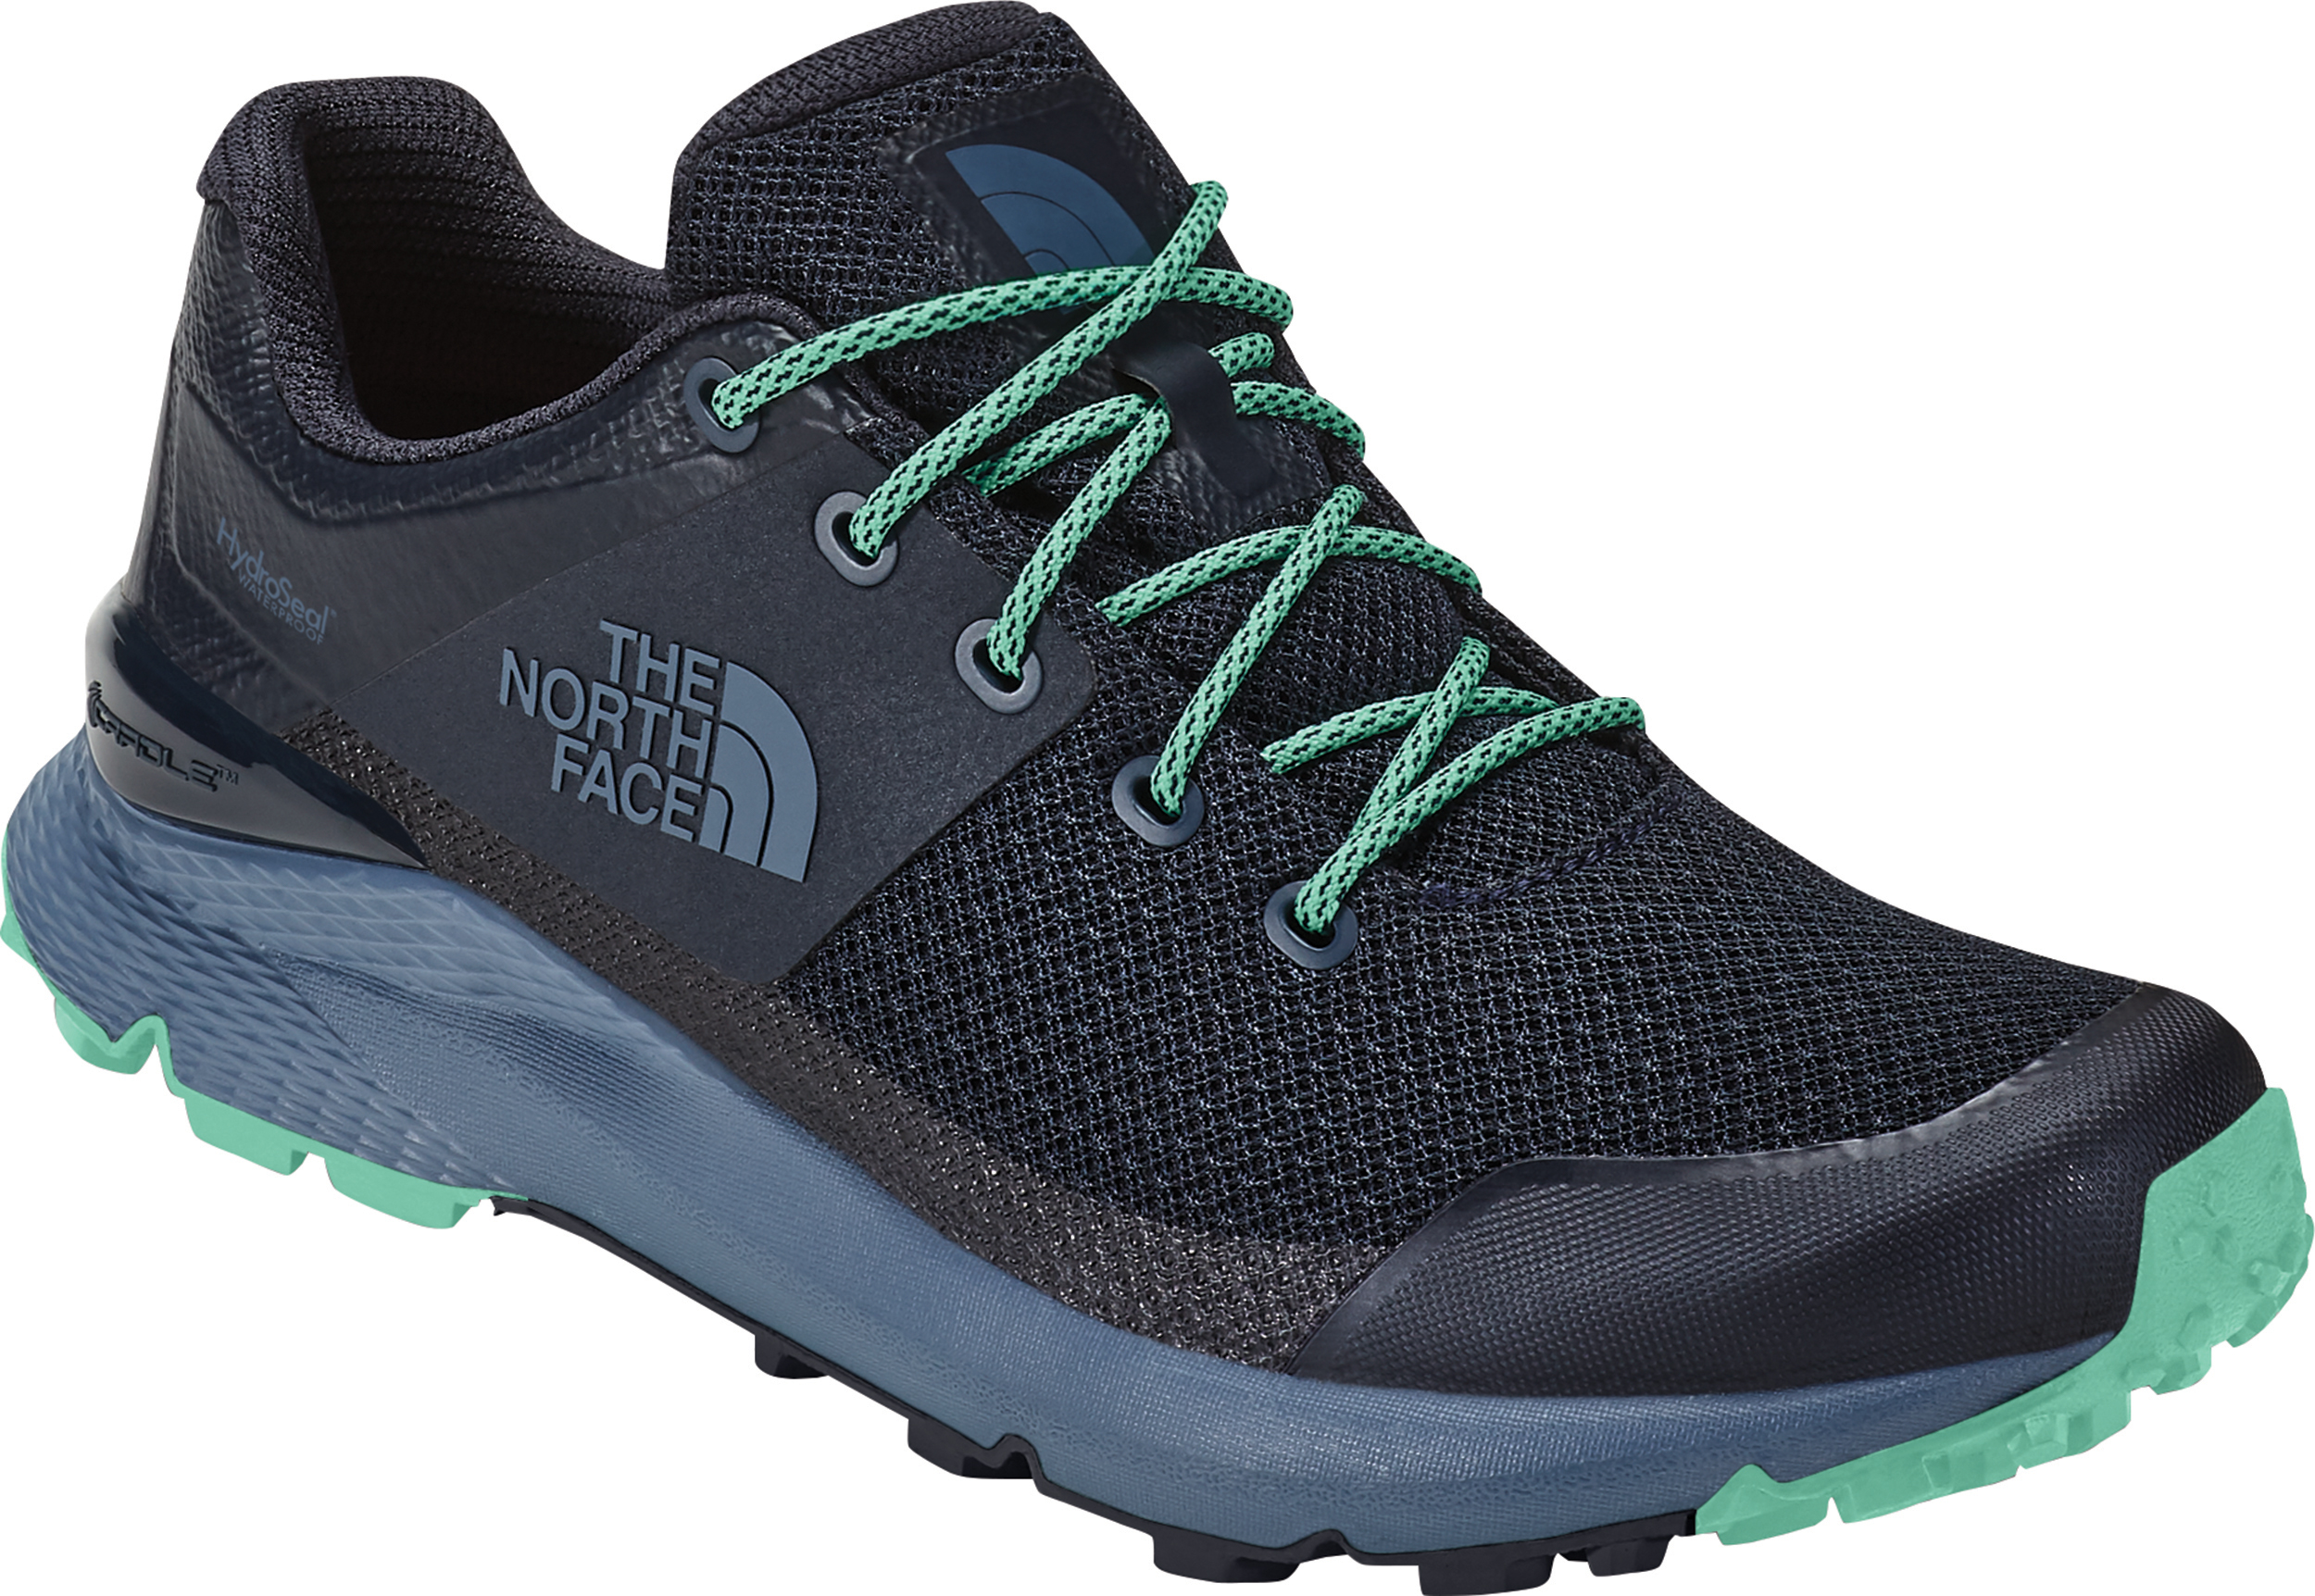 North Face Vals Waterproof Trail Shoes